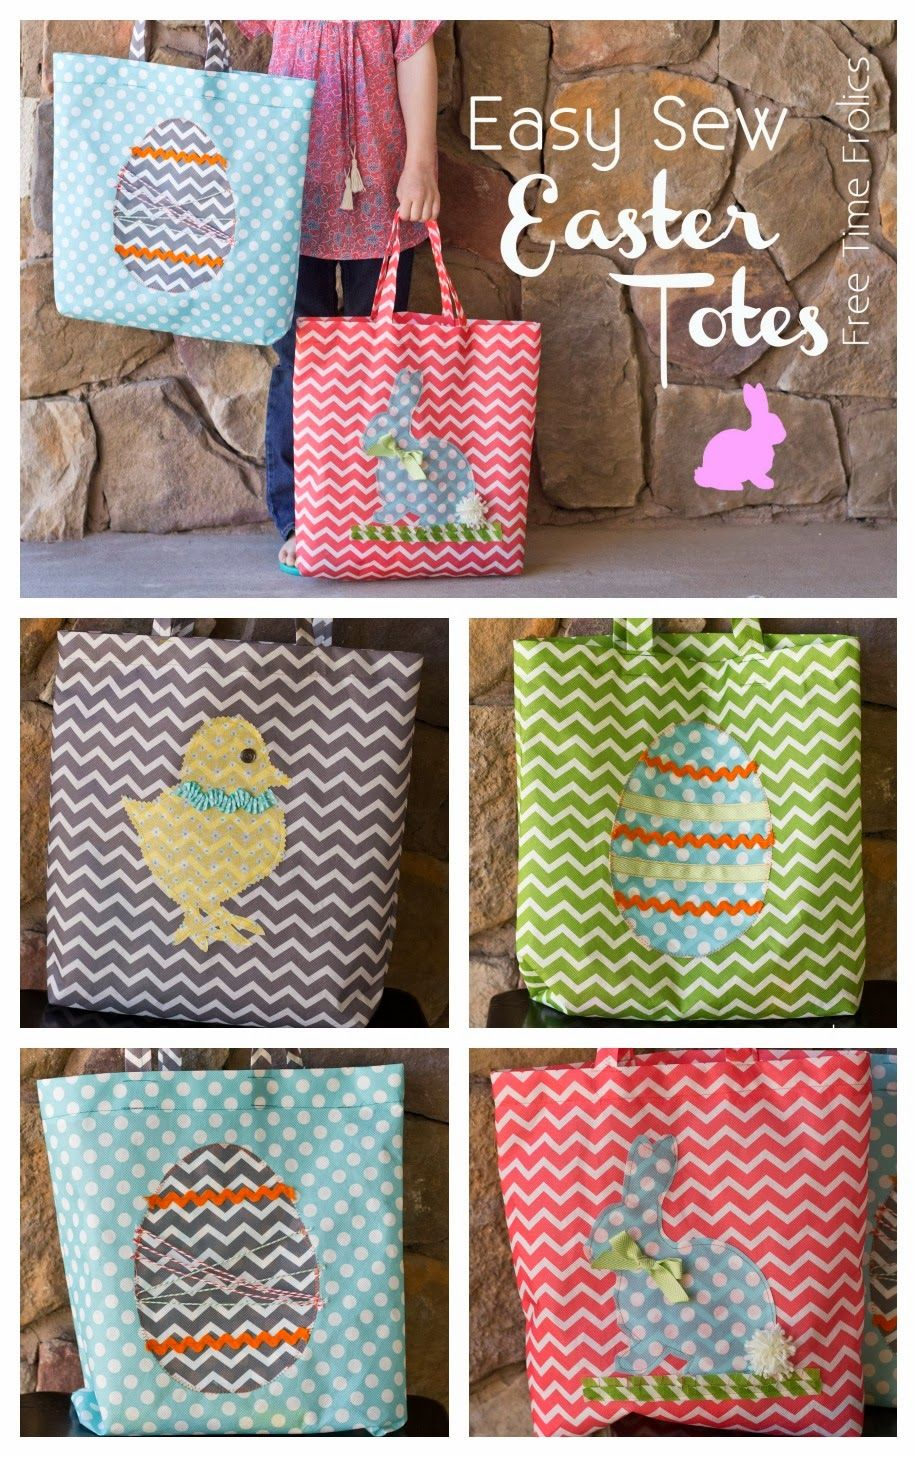 Easy Sew Easter Tote Diy Easter Totes Easter Bags Easter Projects